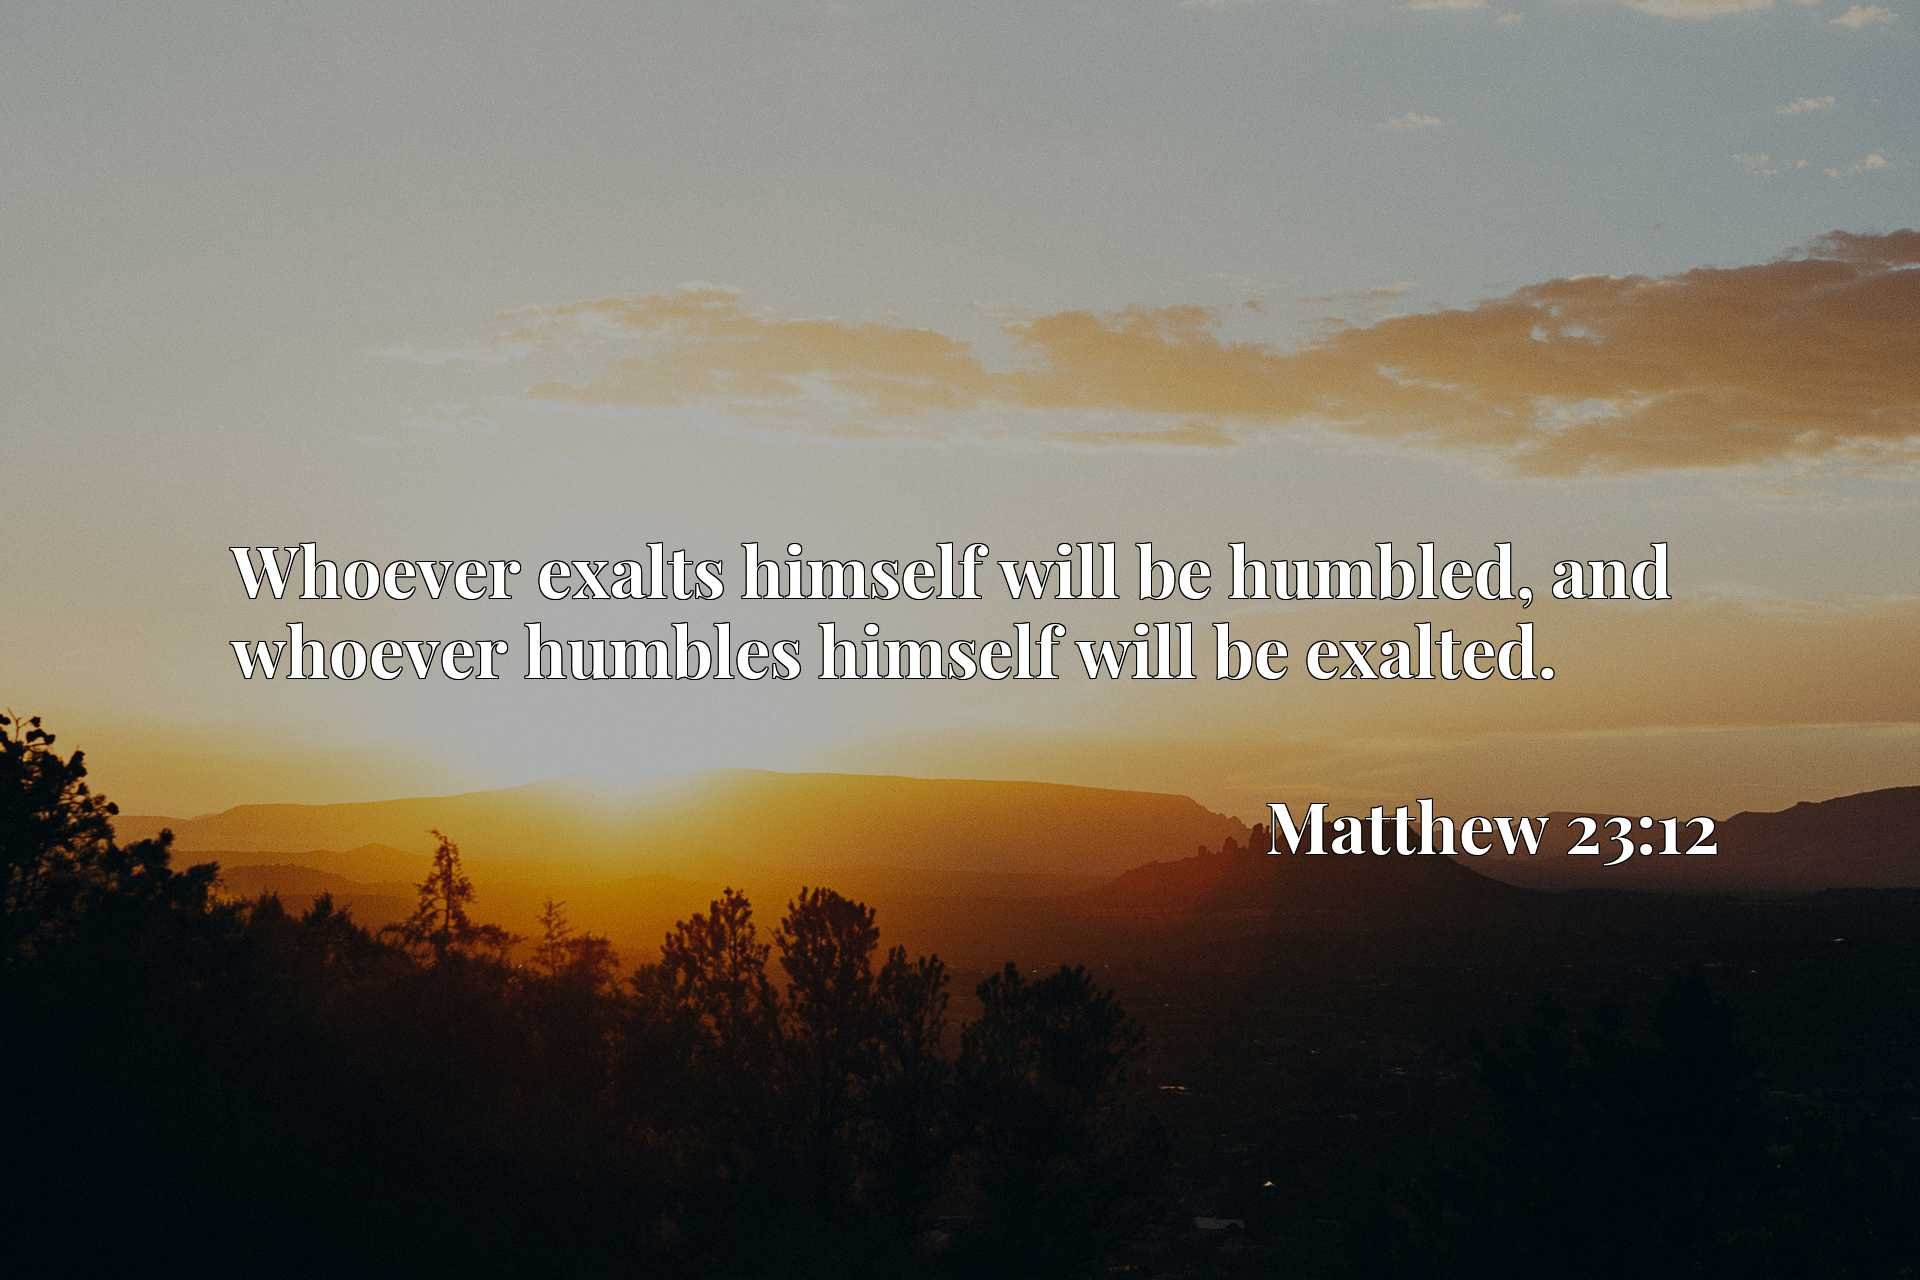 Whoever exalts himself will be humbled, and whoever humbles himself will be exalted.